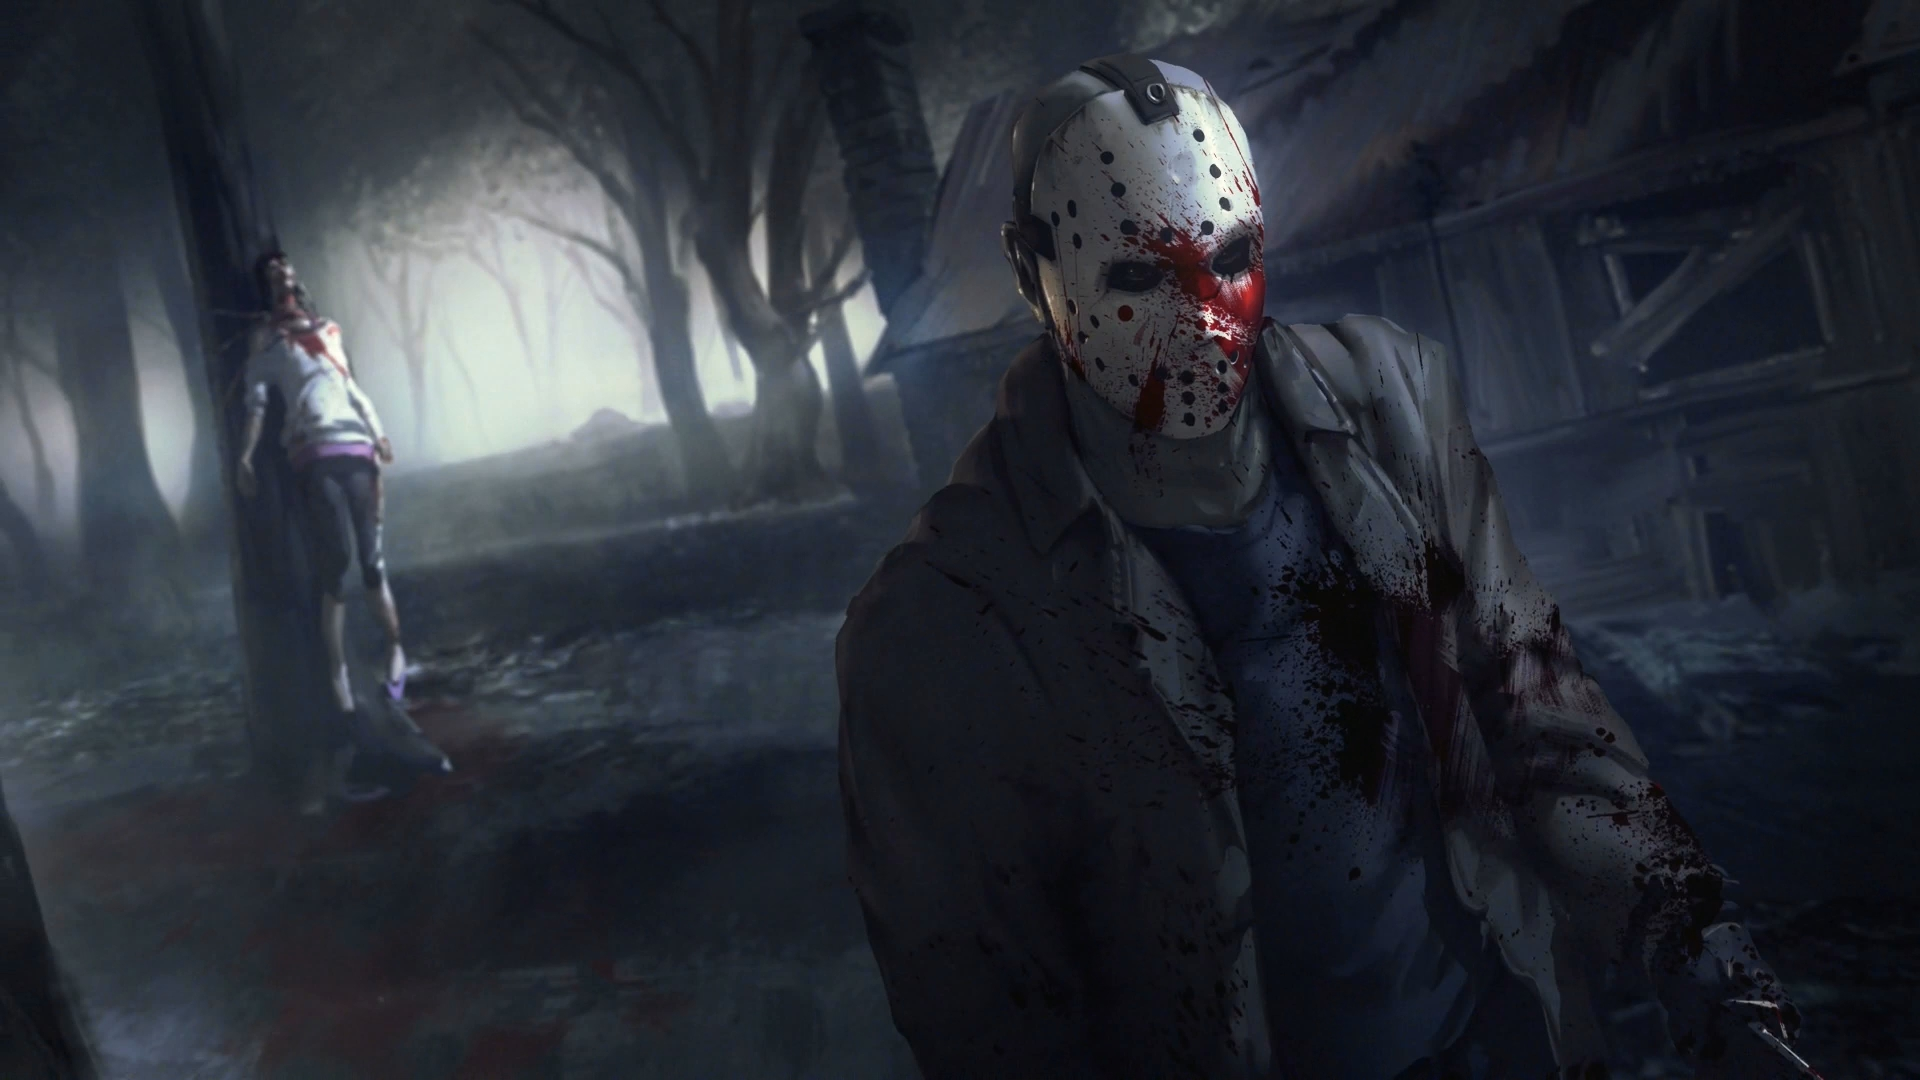 friday the 13th: the game full hd fond d'écran and arrière-plan